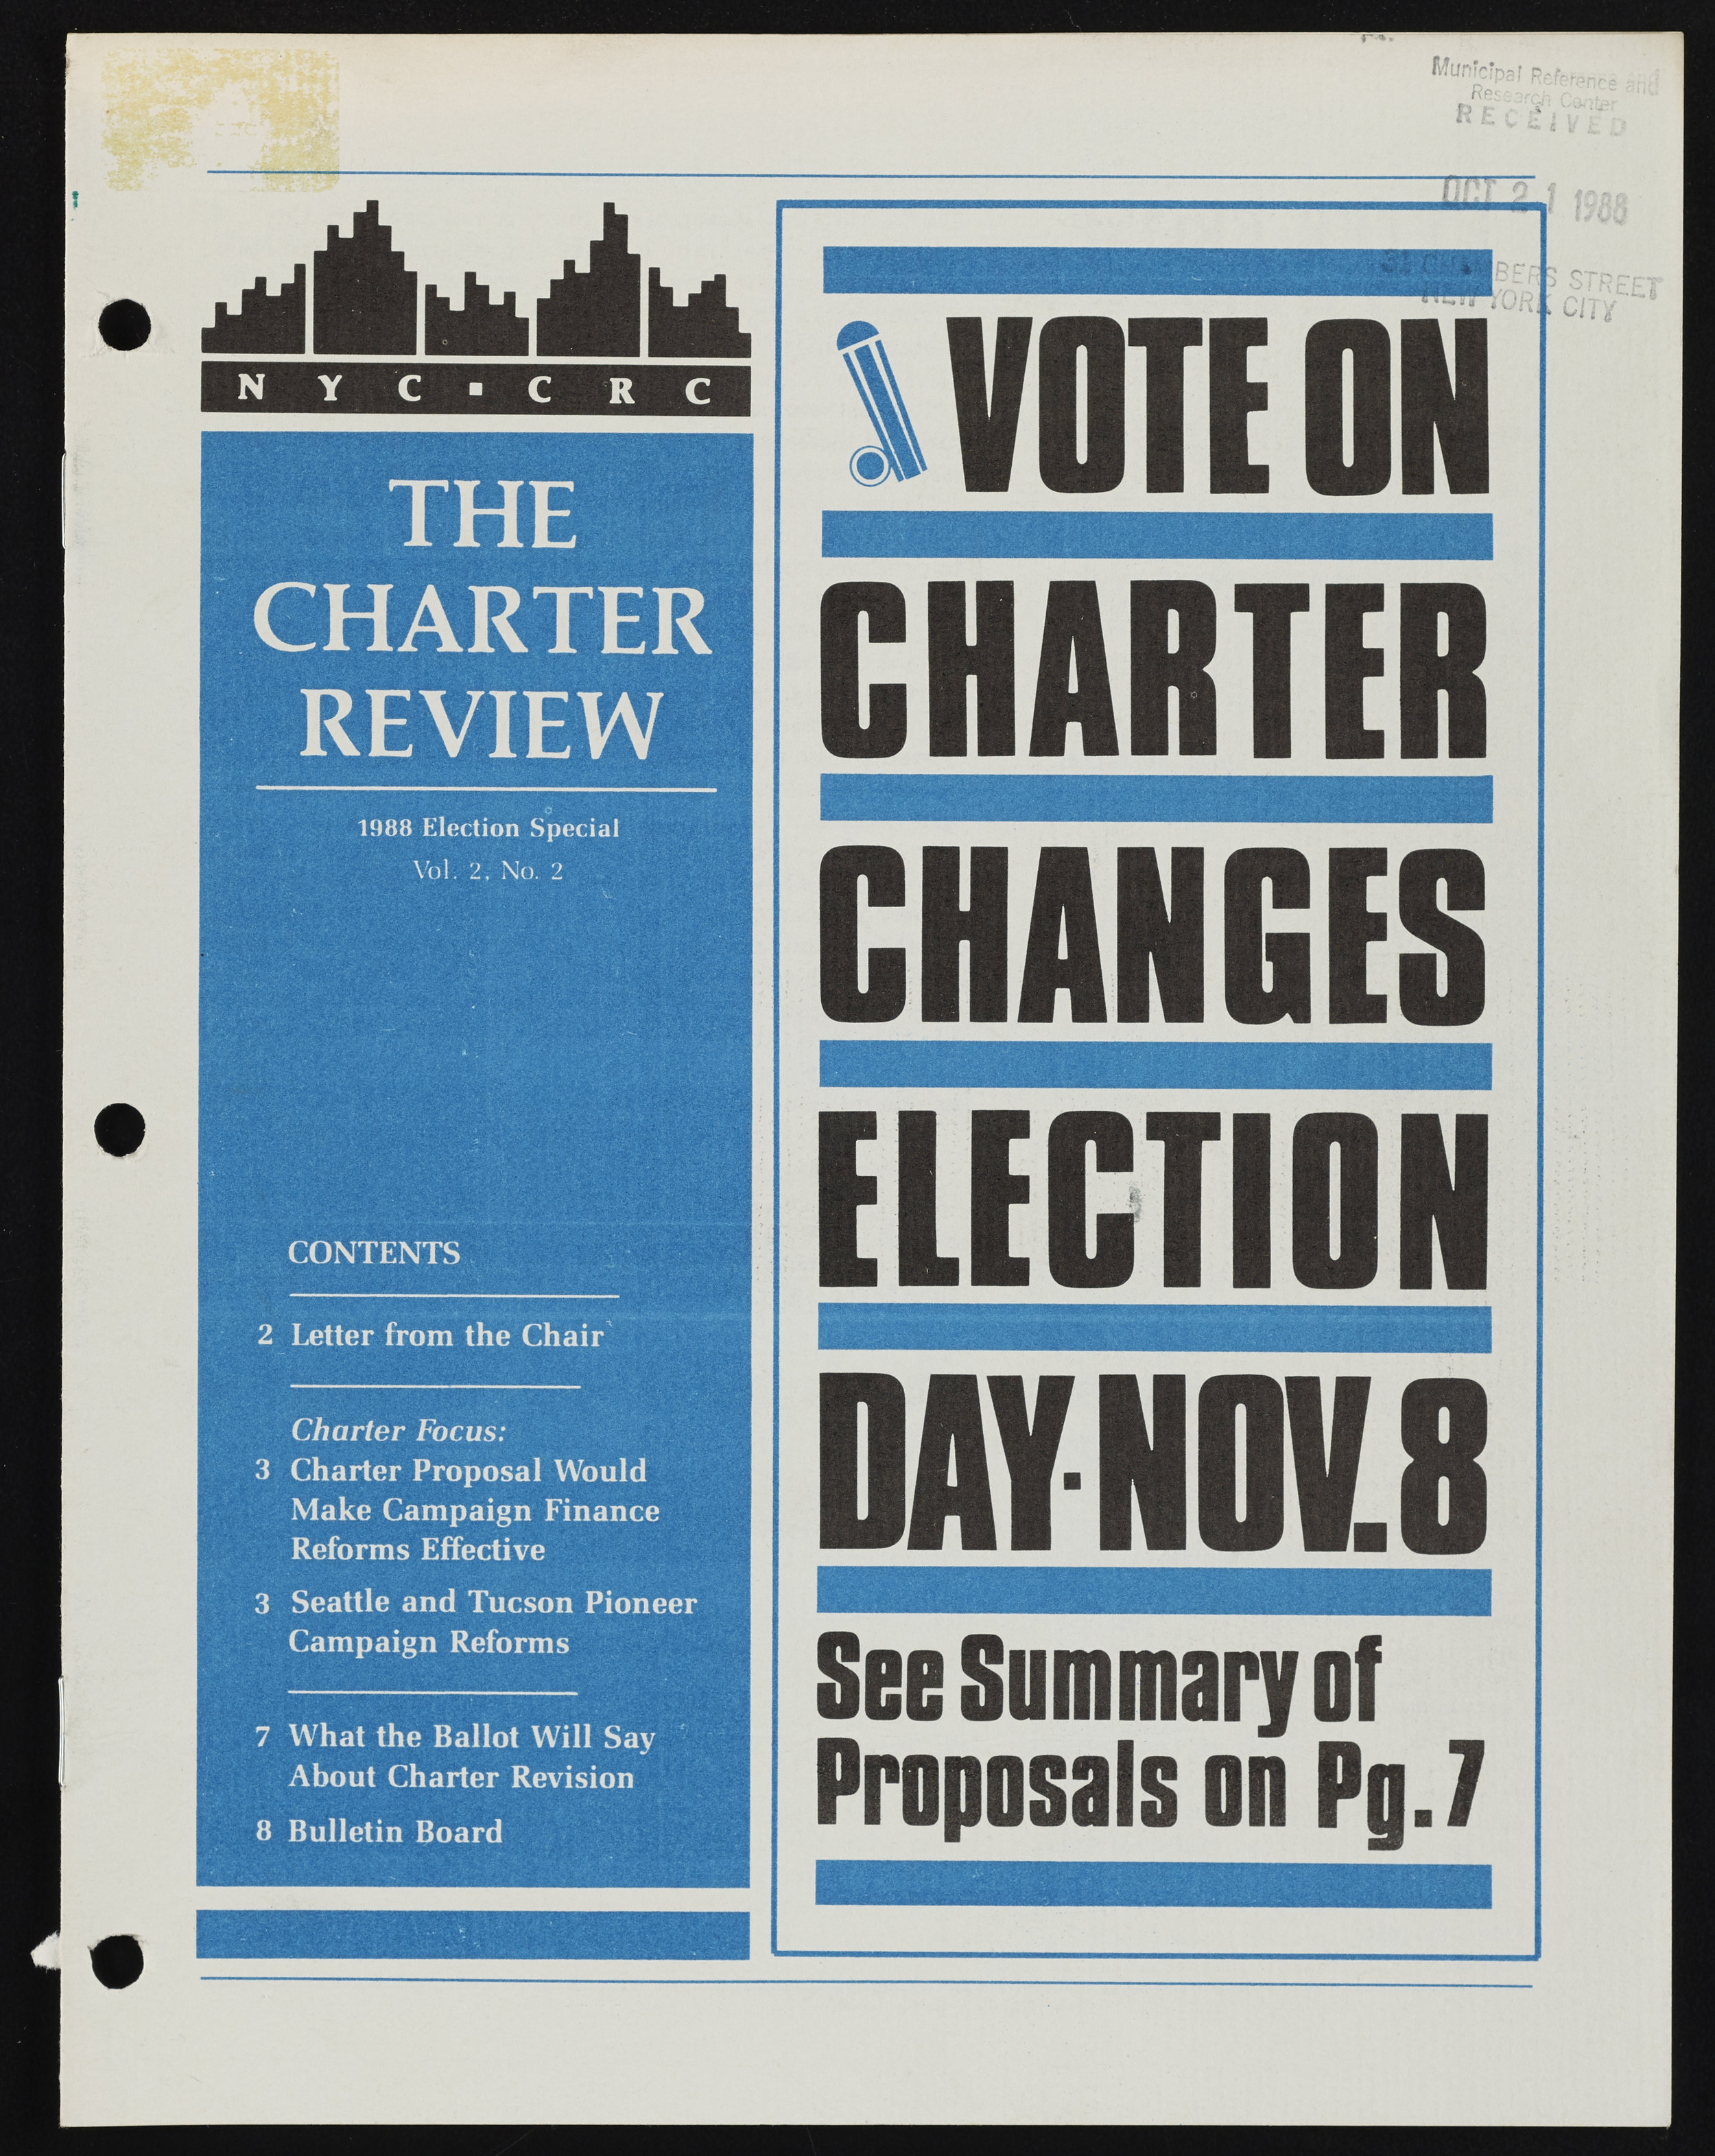 The Charter Review, 1988 Election Special, Vol 2, No. 2 . NYC Municipal Library.